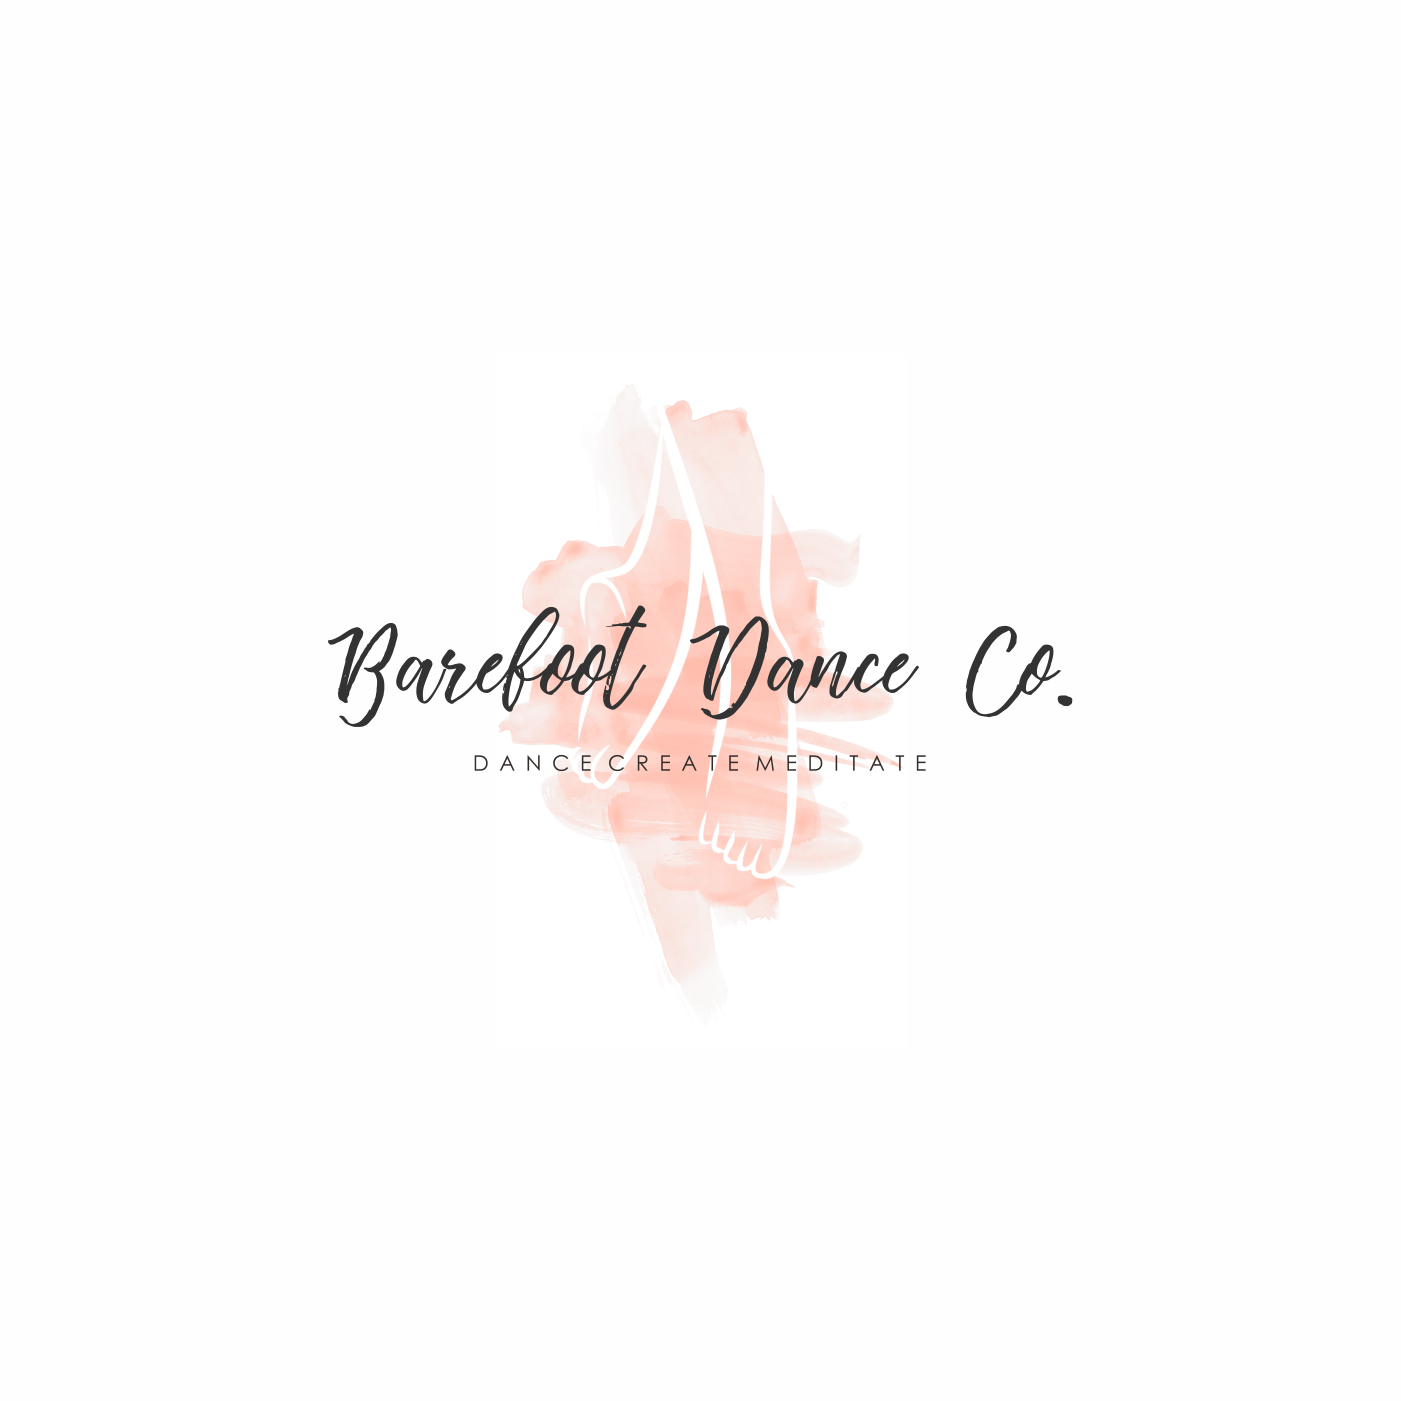 Barefoot Dance Co Logo Design by Gree™